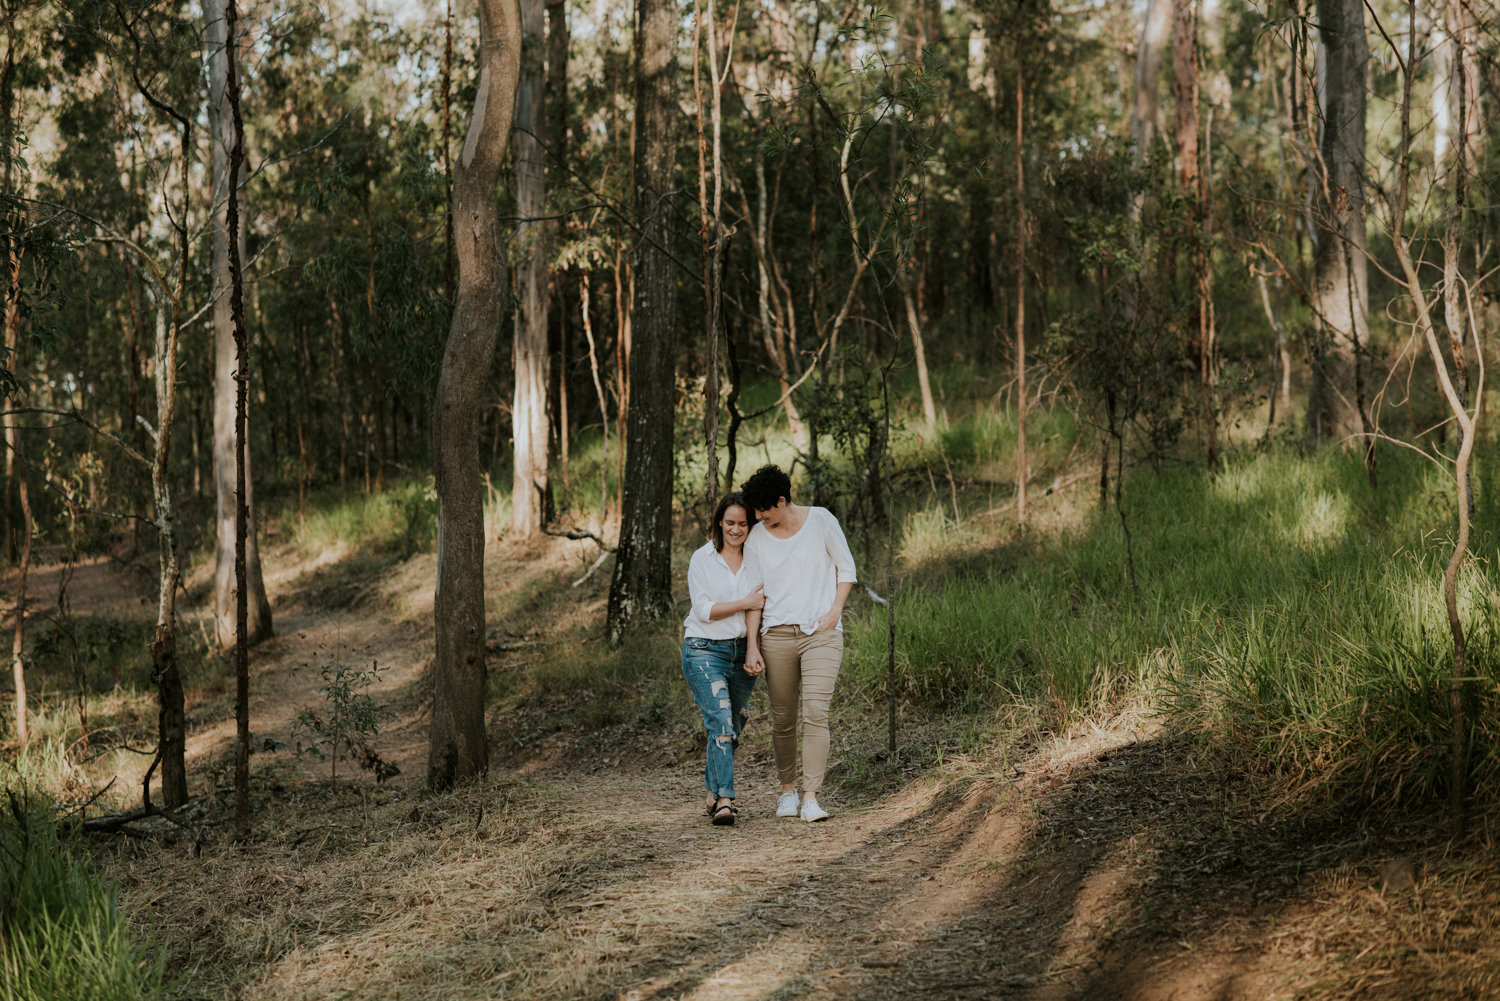 Brisbane Lesbian Wedding Photographer | Same-Sex Engagement-Elopement Photography-1.jpg